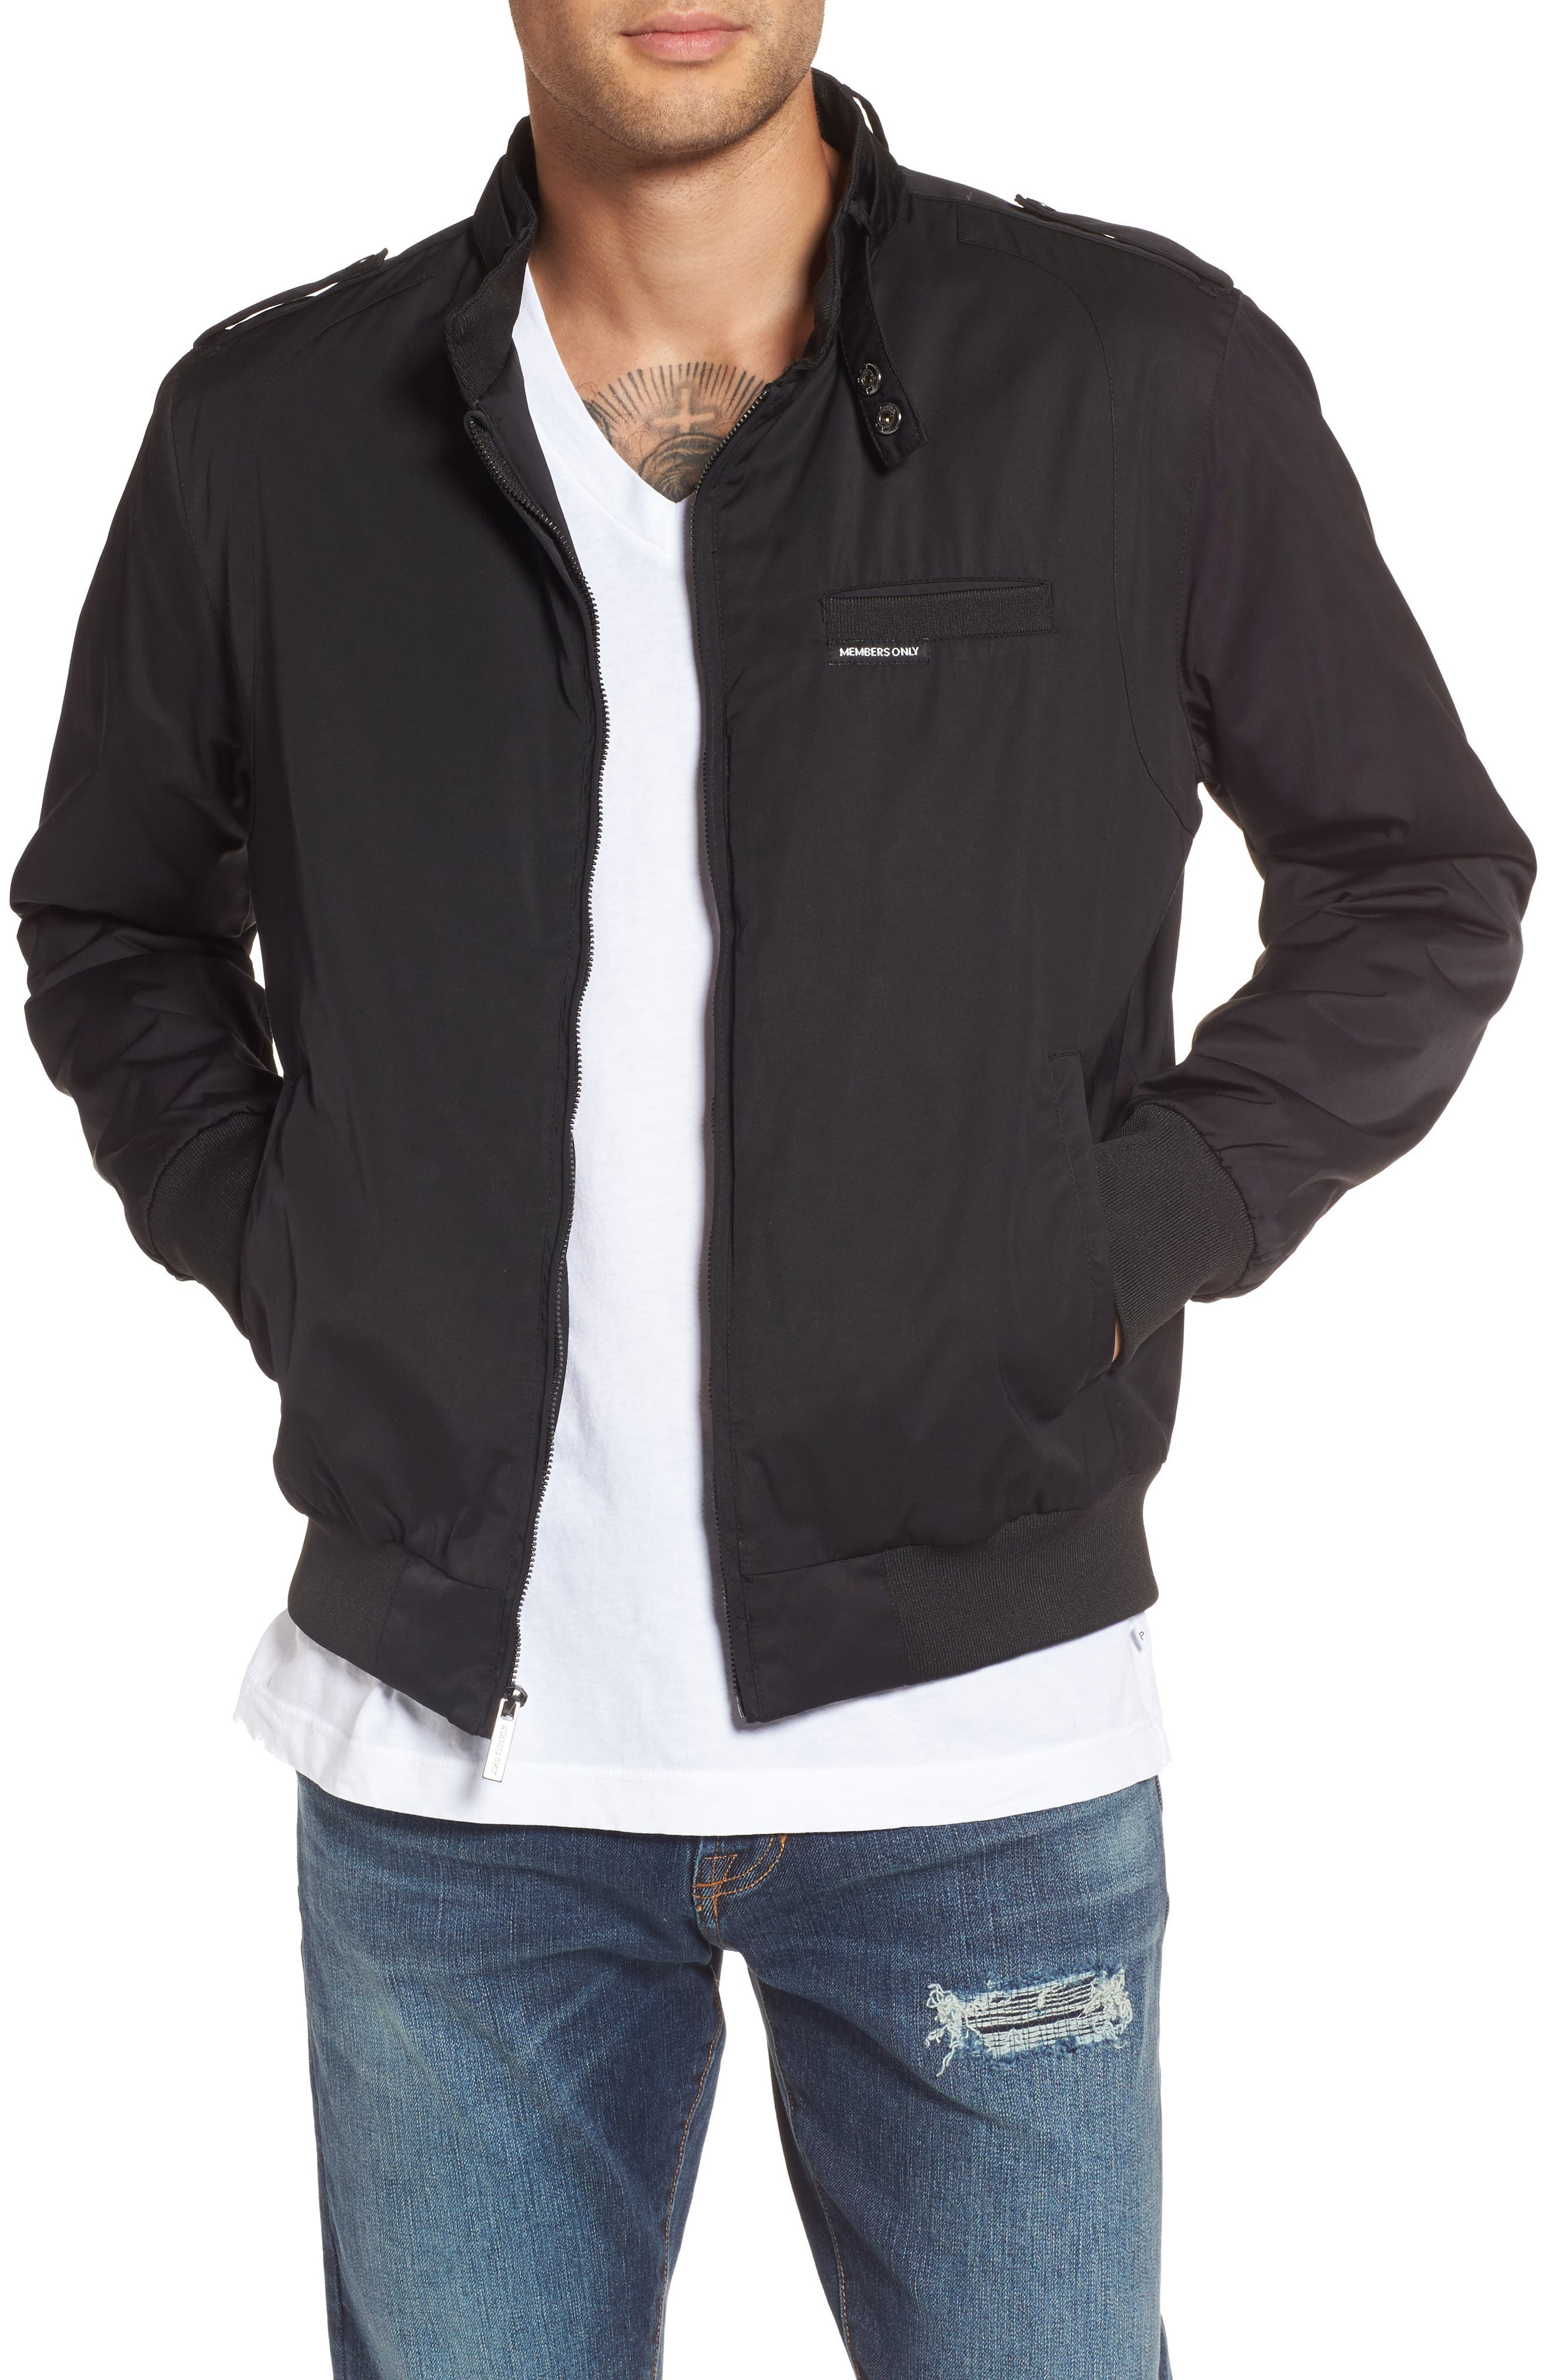 Twill Iconic Jacket,                         Main,                         color, Black